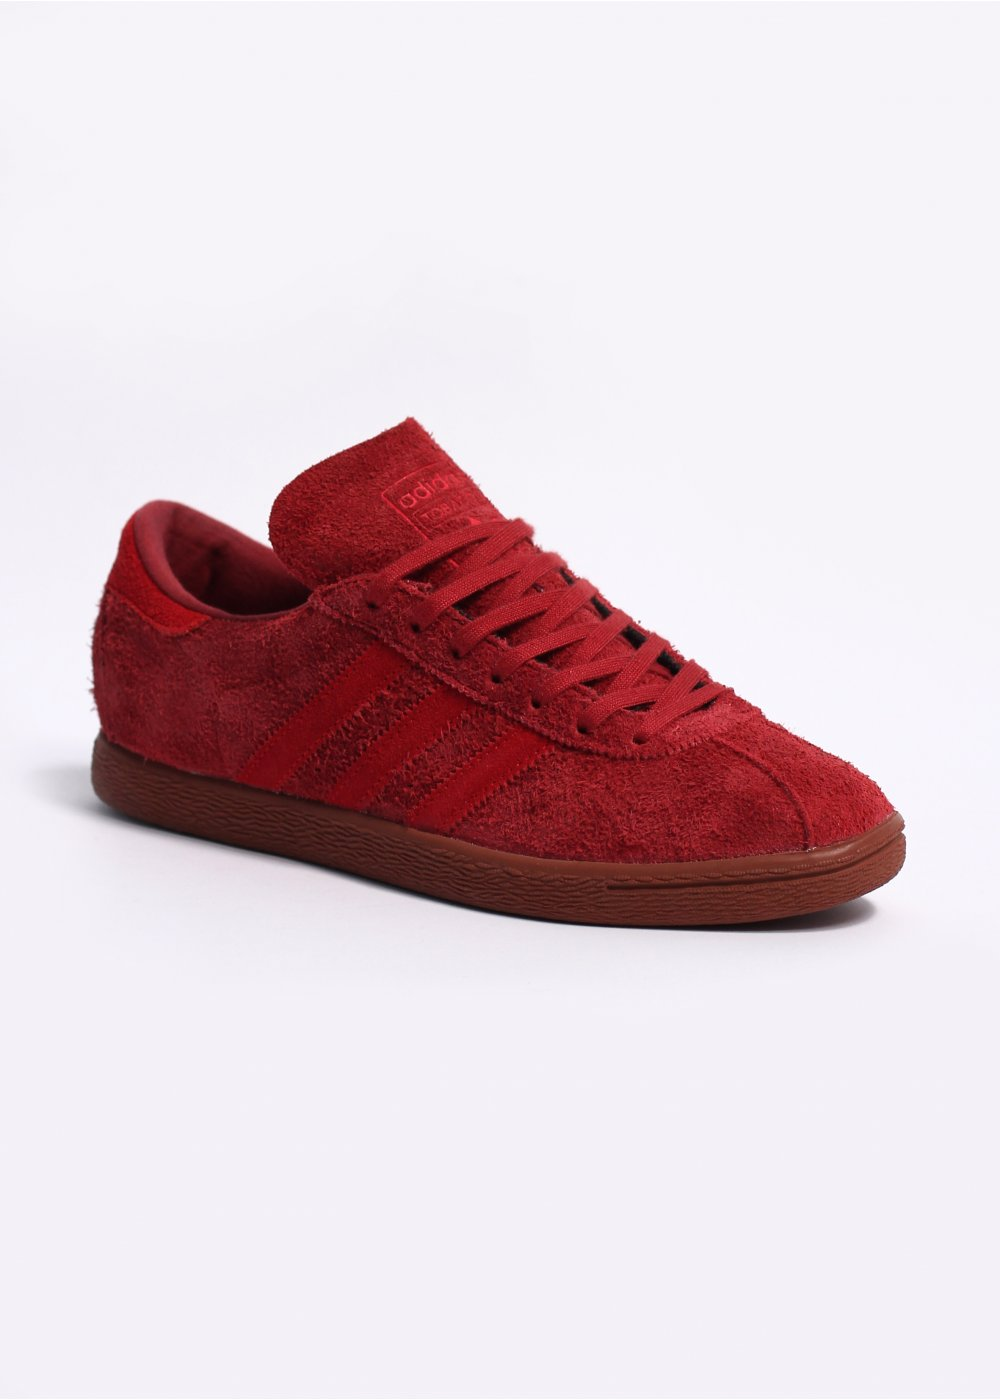 adidas trainers red